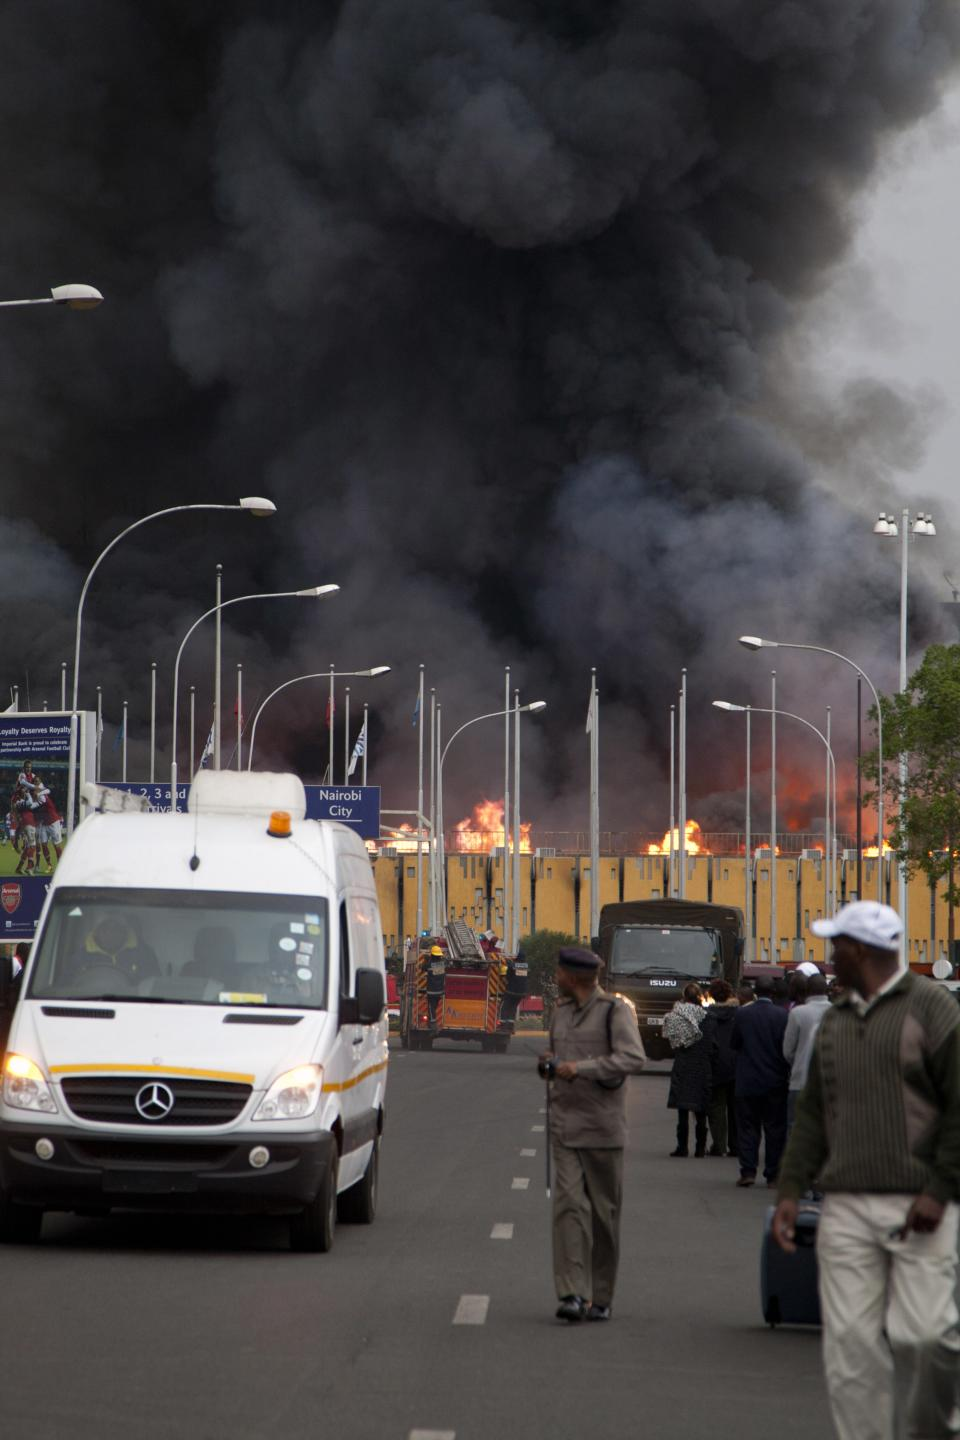 A policeman stands guard as a fire engulfs the International arrivals hall at the Jomo Kenyatta International Airport in Nairobi, Kenya Wednesday, Aug. 7, 2013. The Kenya Airports Authority said the Kenya's main international airport has been closed until further notice so that emergency teams can battle the fire. (AP Photo/Sayyid Azim)